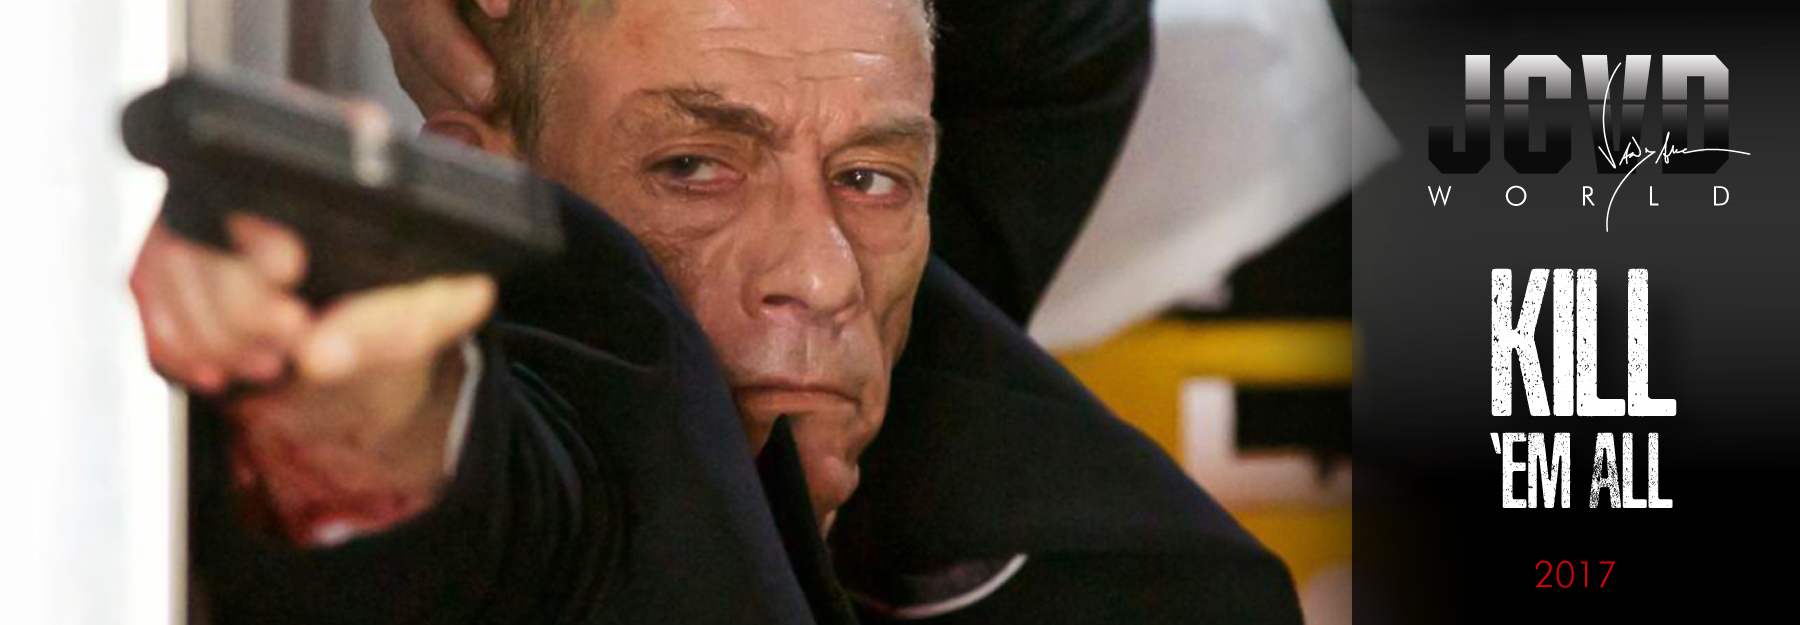 JCVD World - Official Website - Jean Claude Van Damme